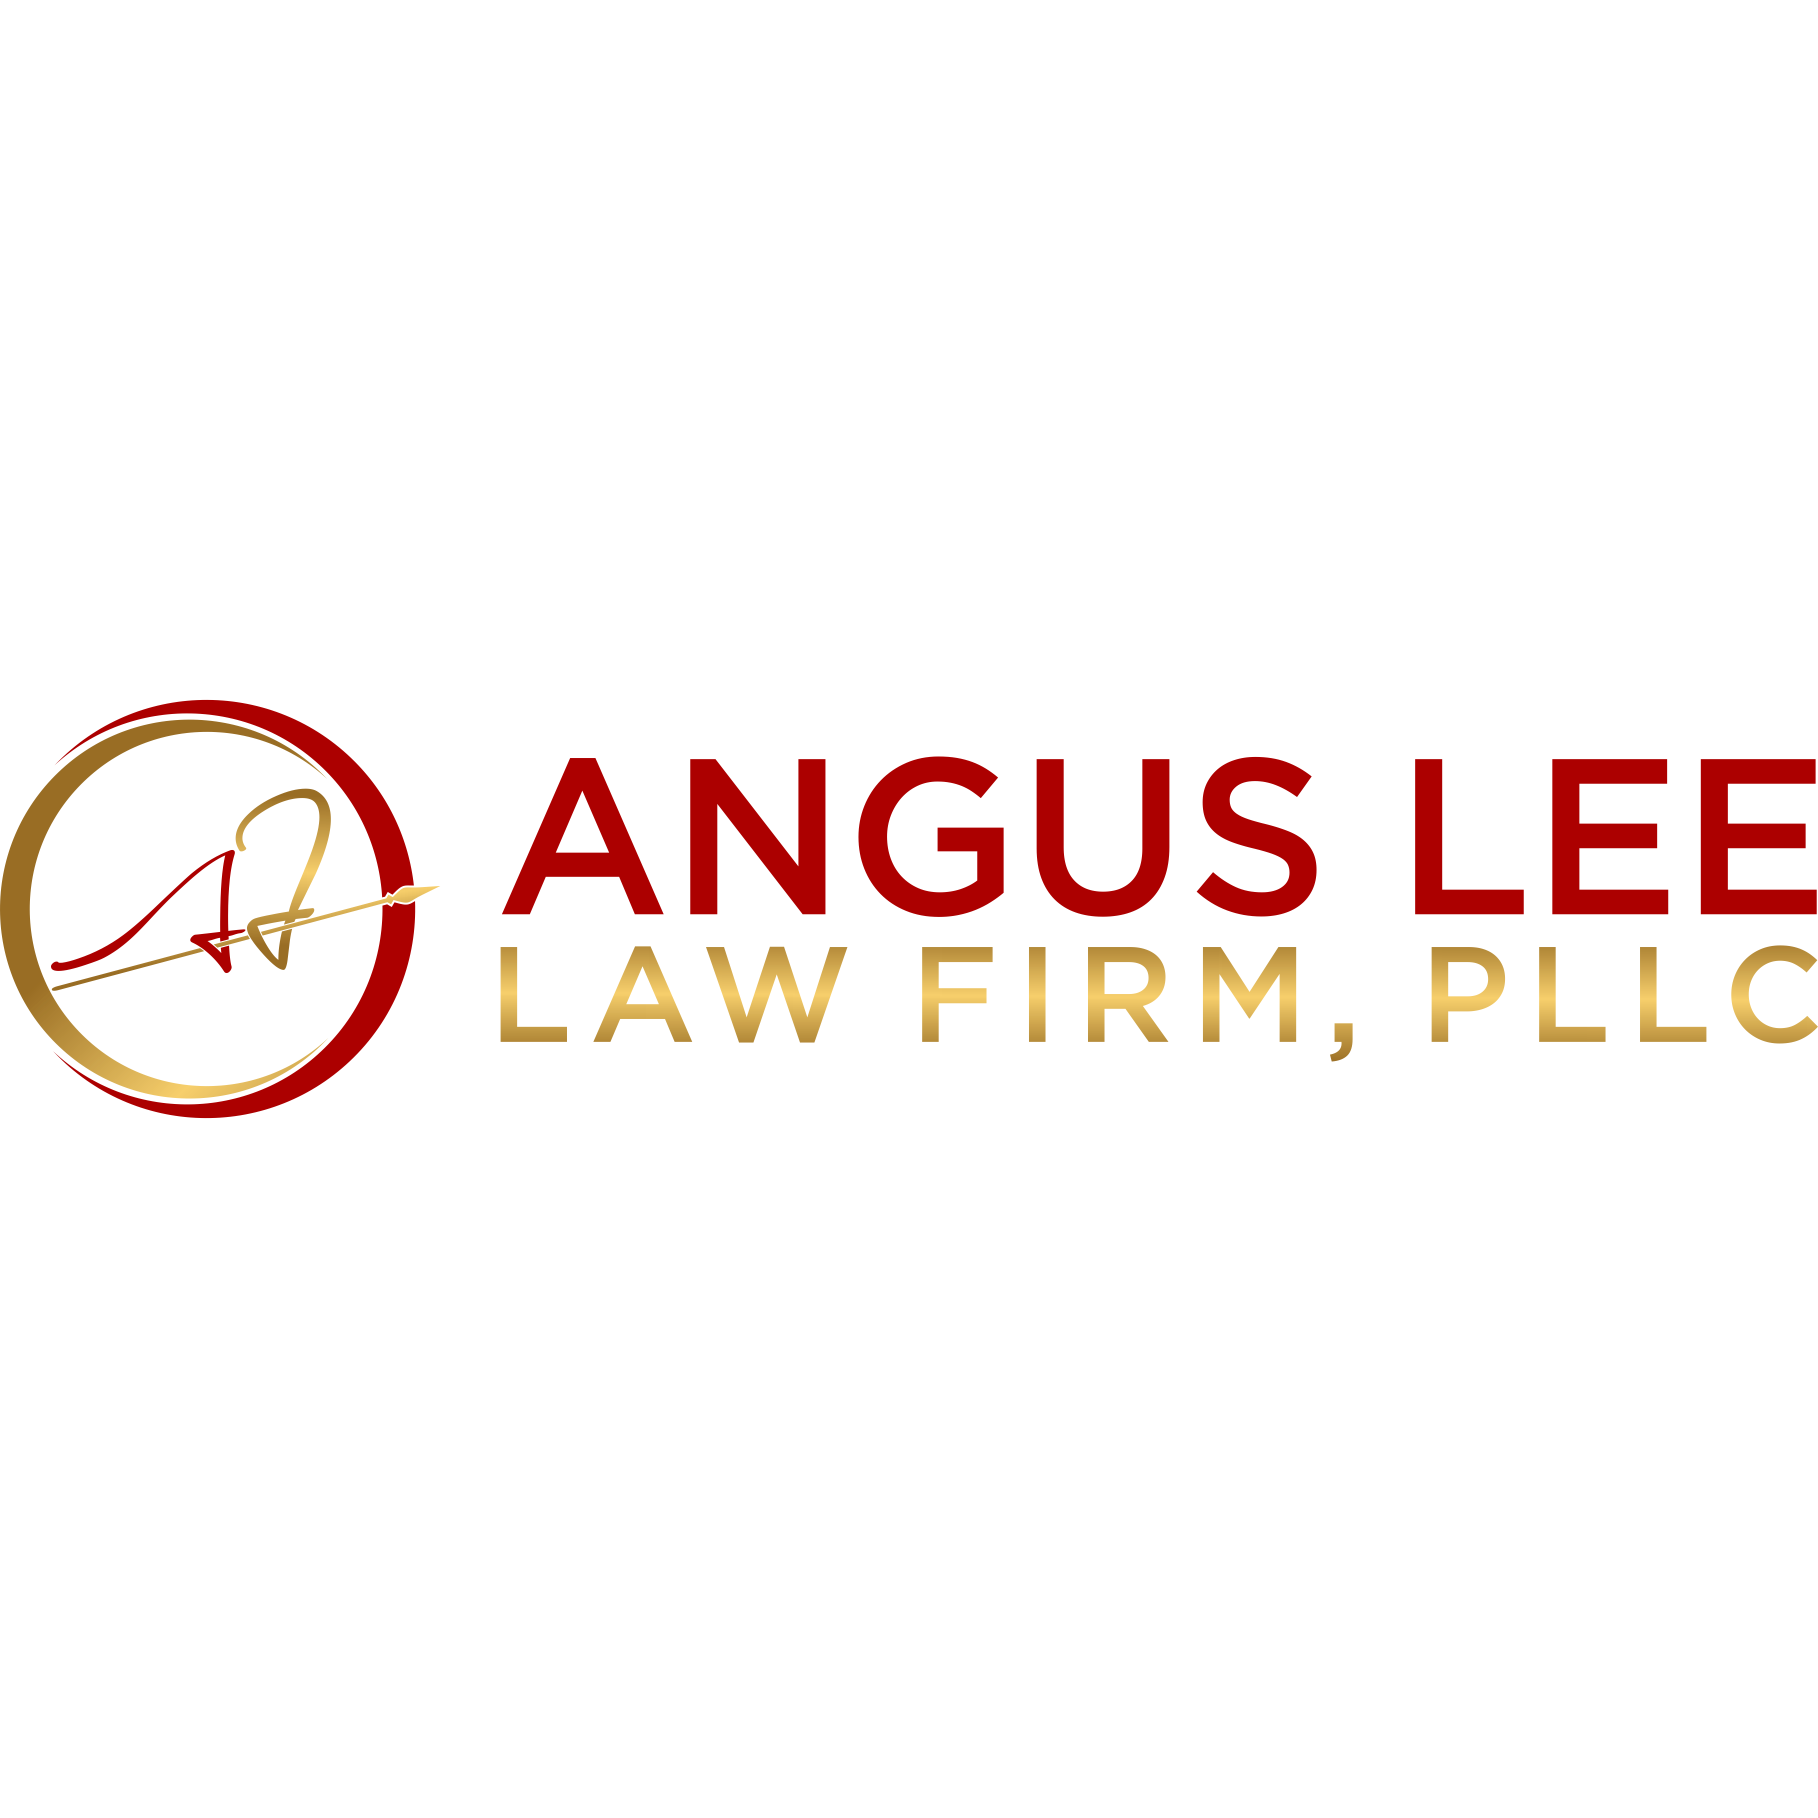 Angus Lee Law Firm, PLLC